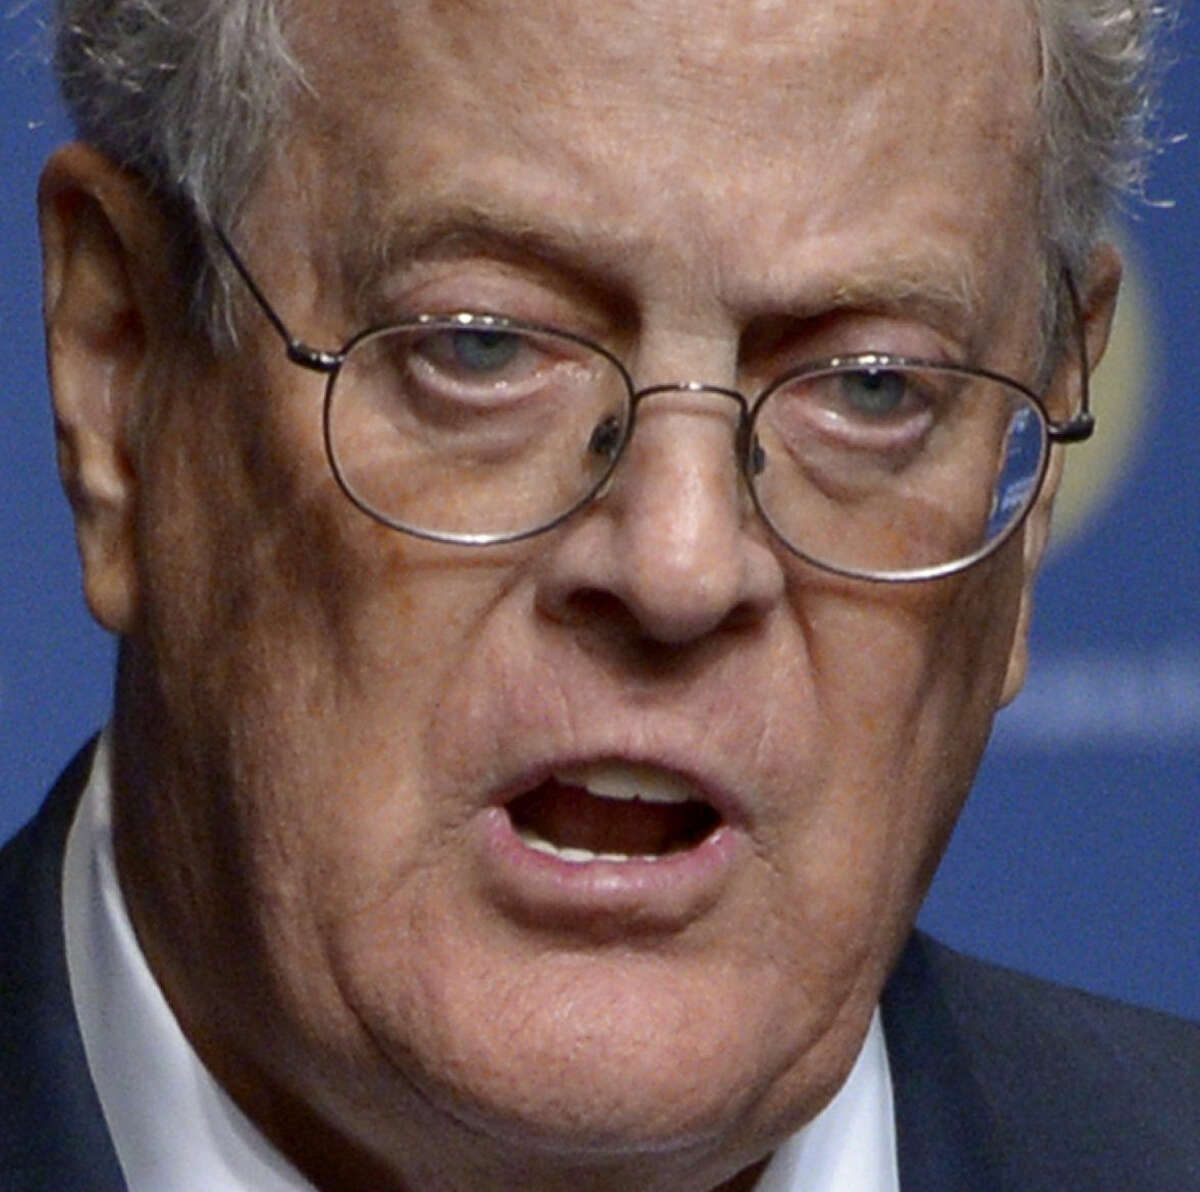 Billionaire brothers David (left) and Charles Koch have funneled millions of dollars into political campaigns and initiatives across the country, many of them conservative causes and attacks on Obama administration policies.